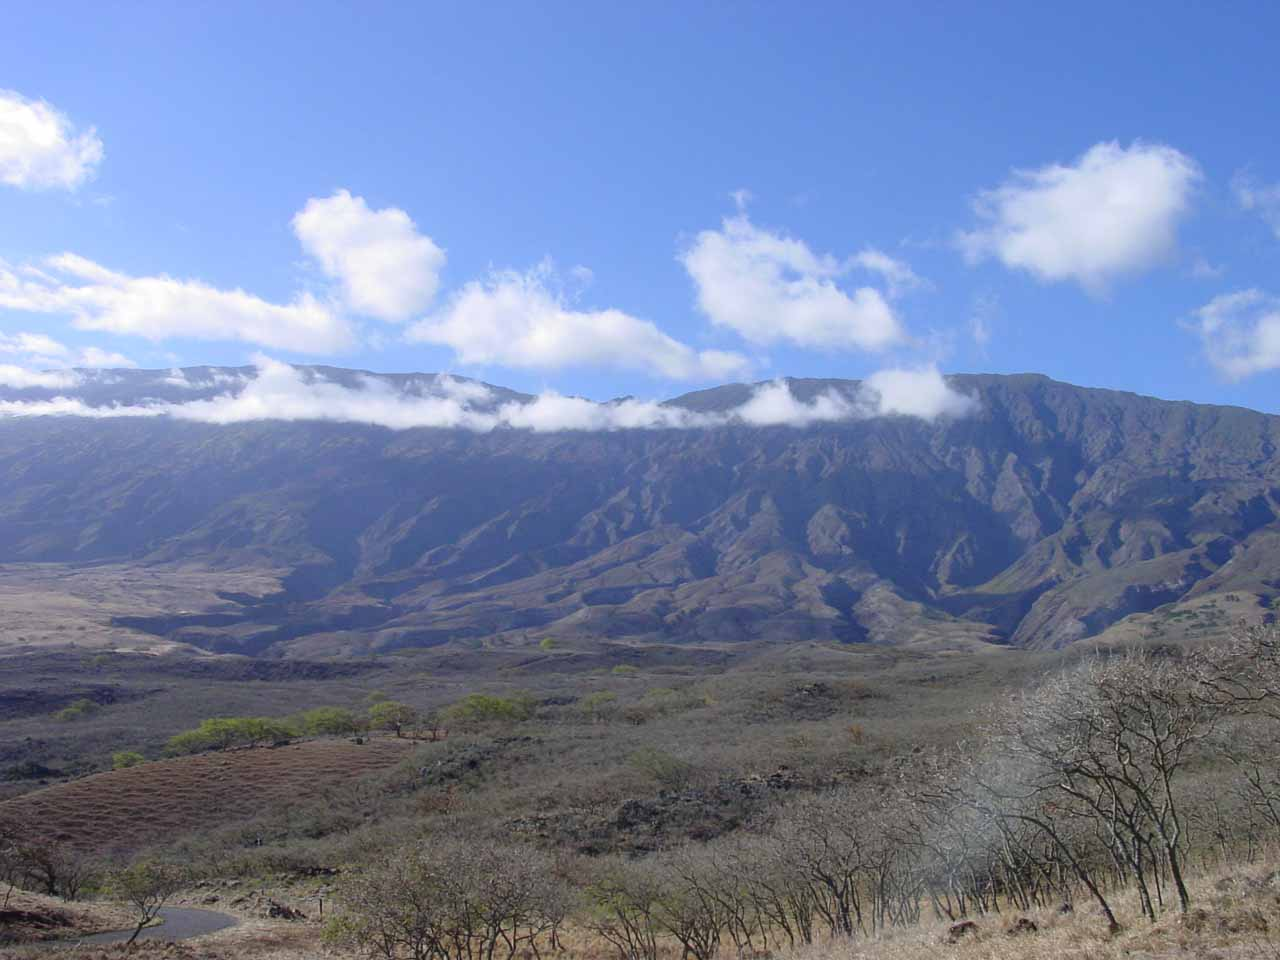 The windswept side of Haleakala